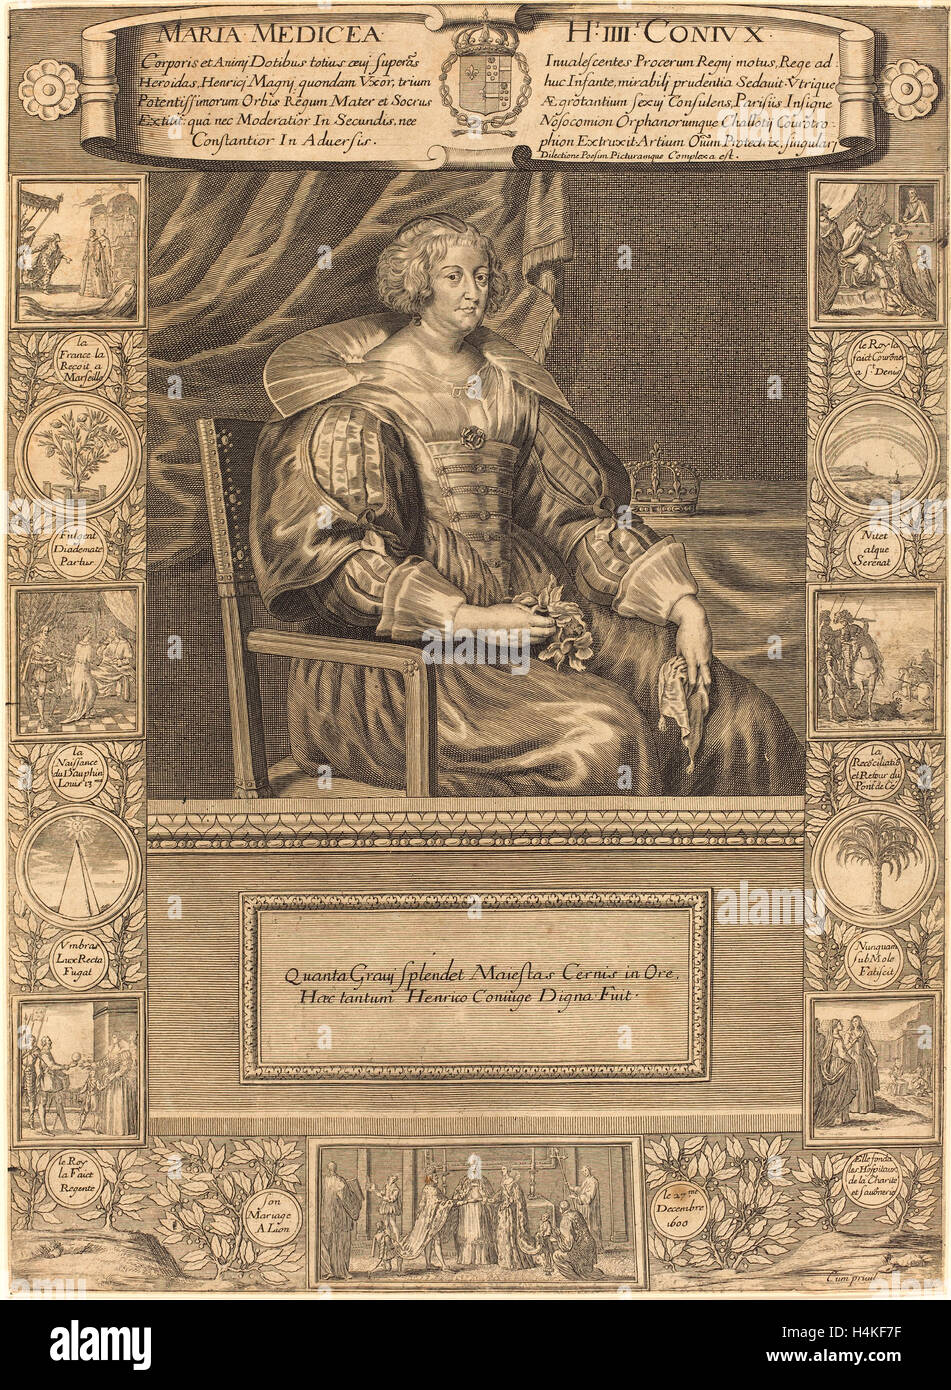 French 17th Century, Marie de Medici, engraving - Stock Image